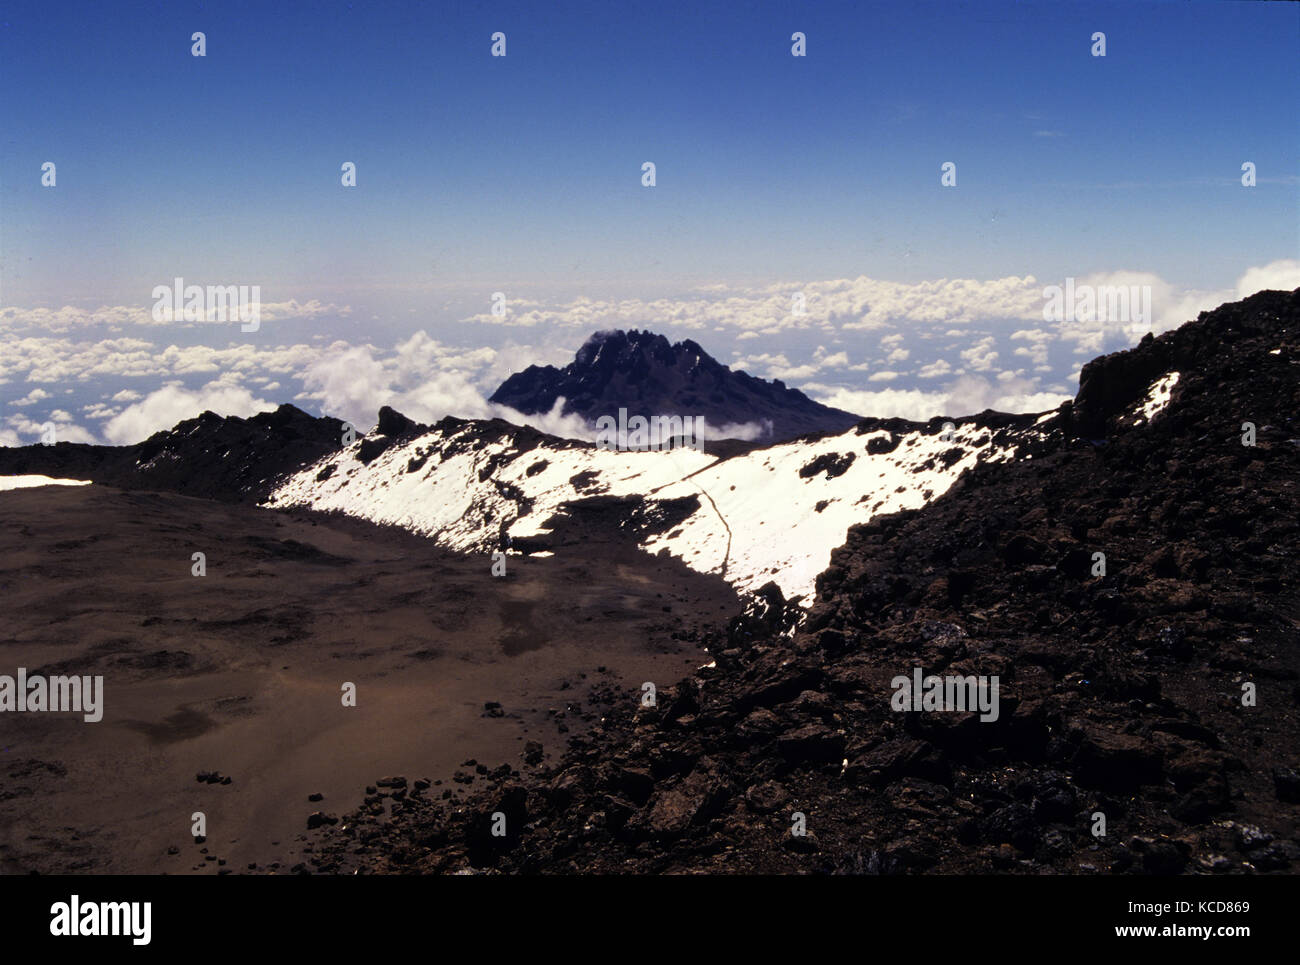 Mawenzi Peak In The Distance As Seen From Mount Kilimanjaro Peak - Distance above sea level